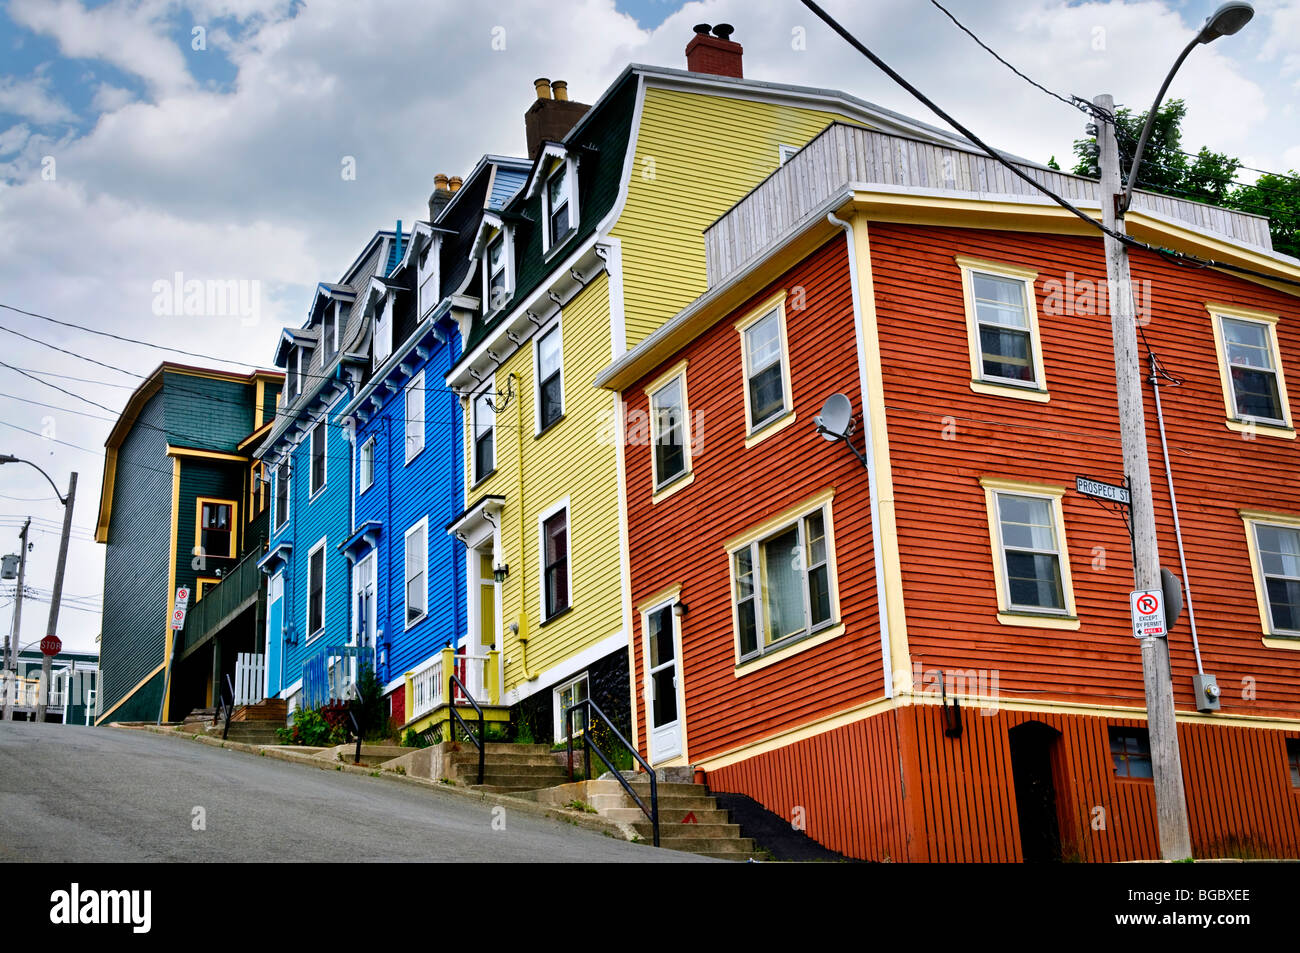 Colorful houses on hill in st john 39 s newfoundland for Newfoundland houses